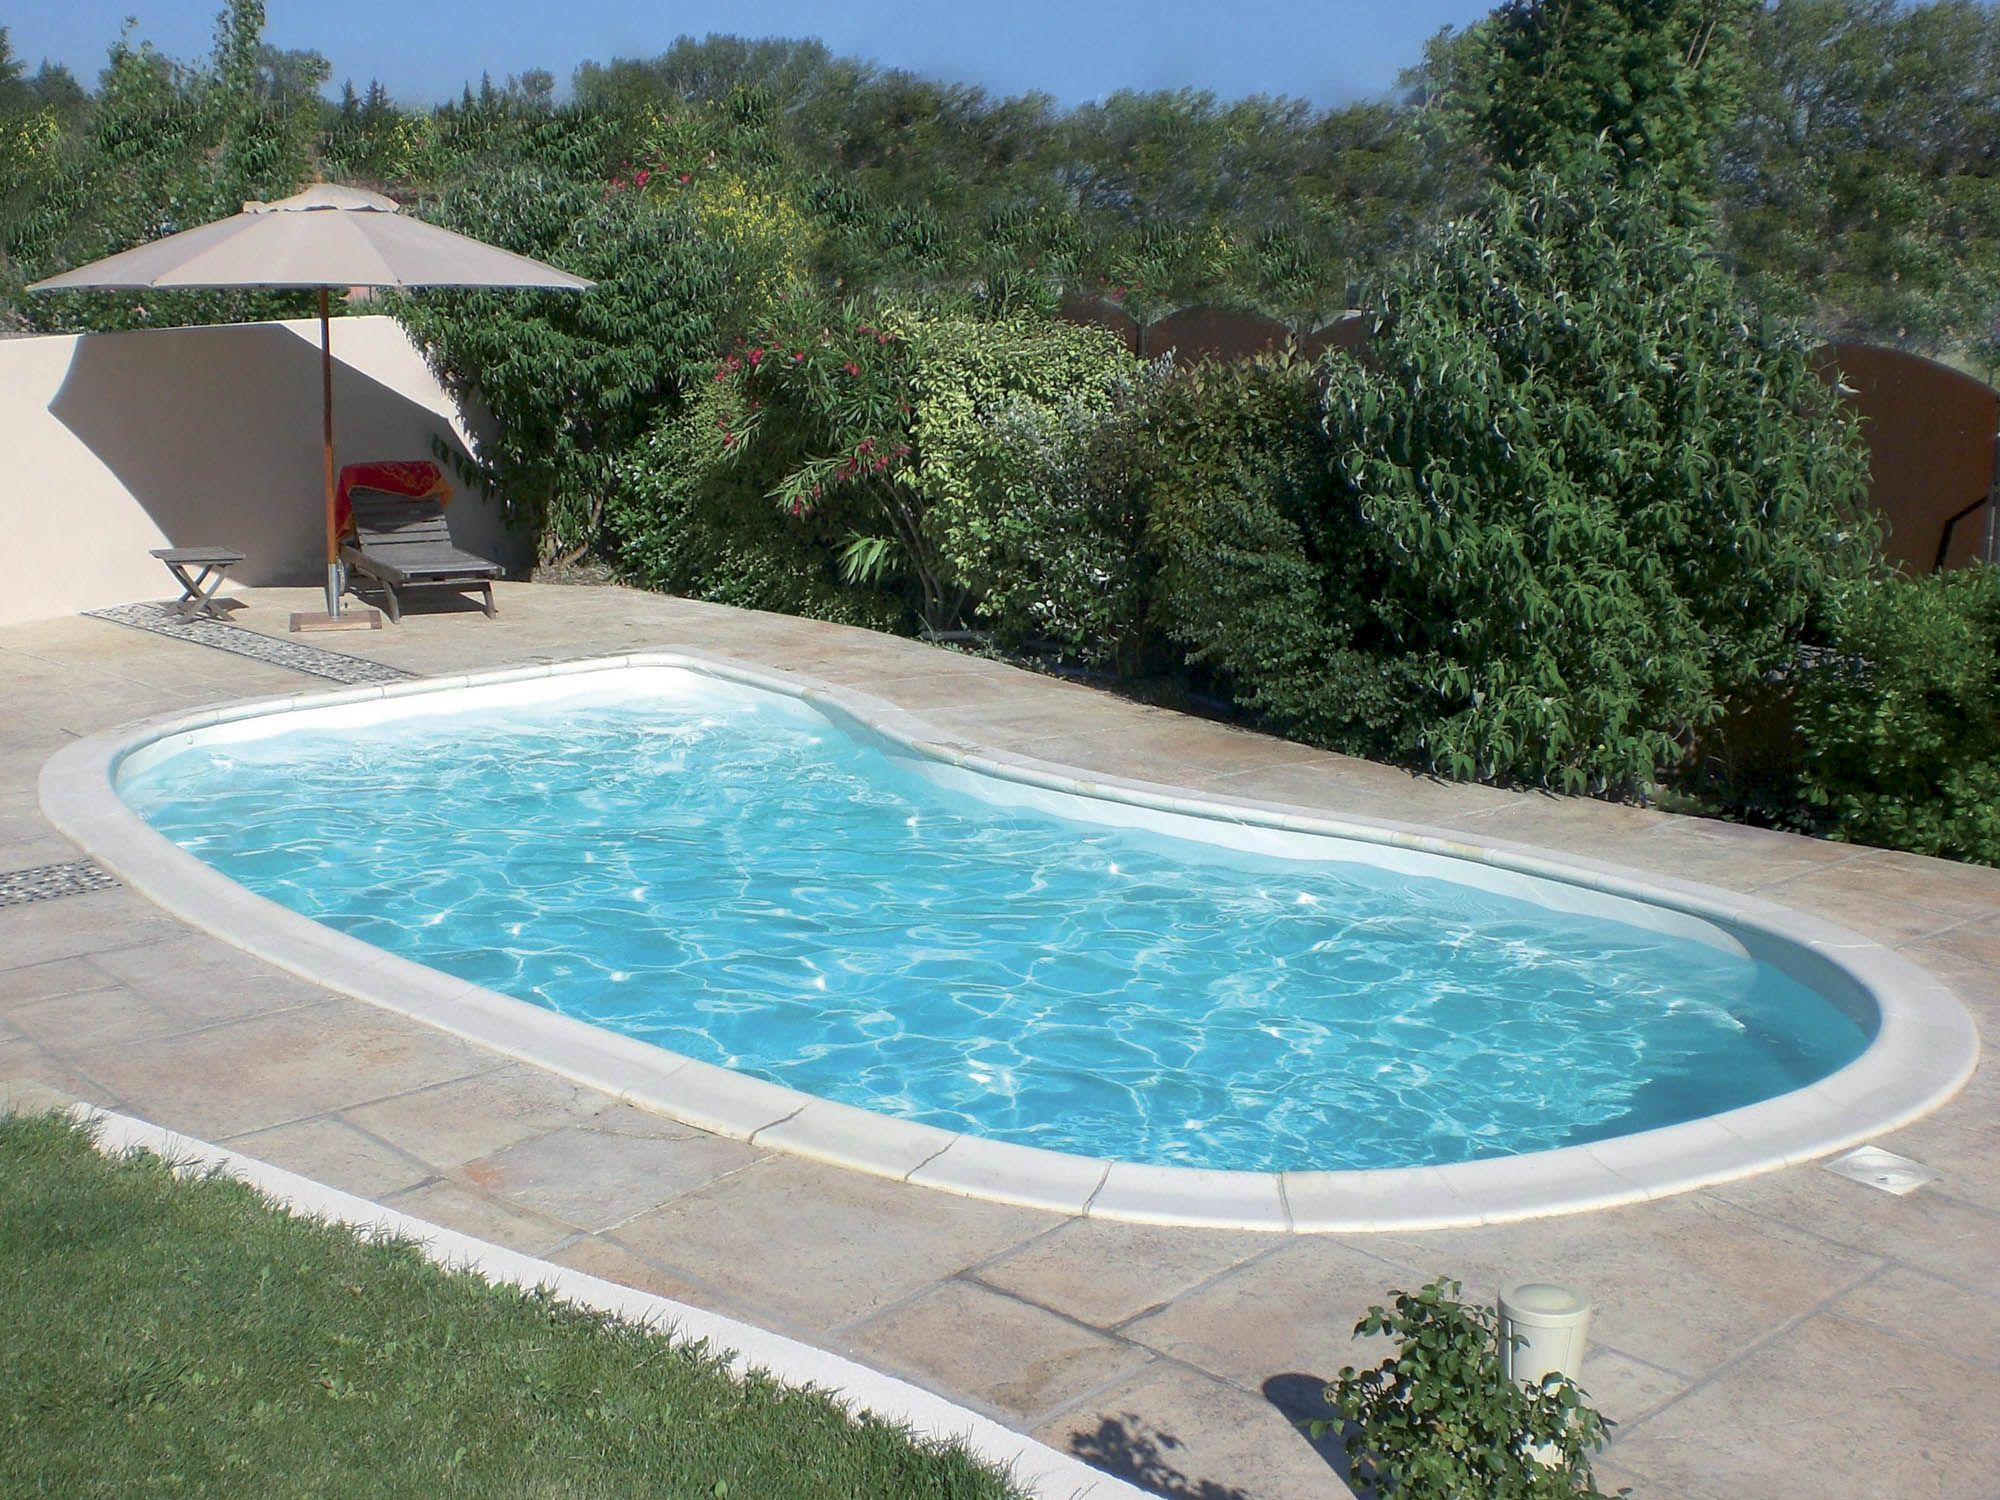 Piscine coque polyester ovation piscine haricot for Piscine coque polyester